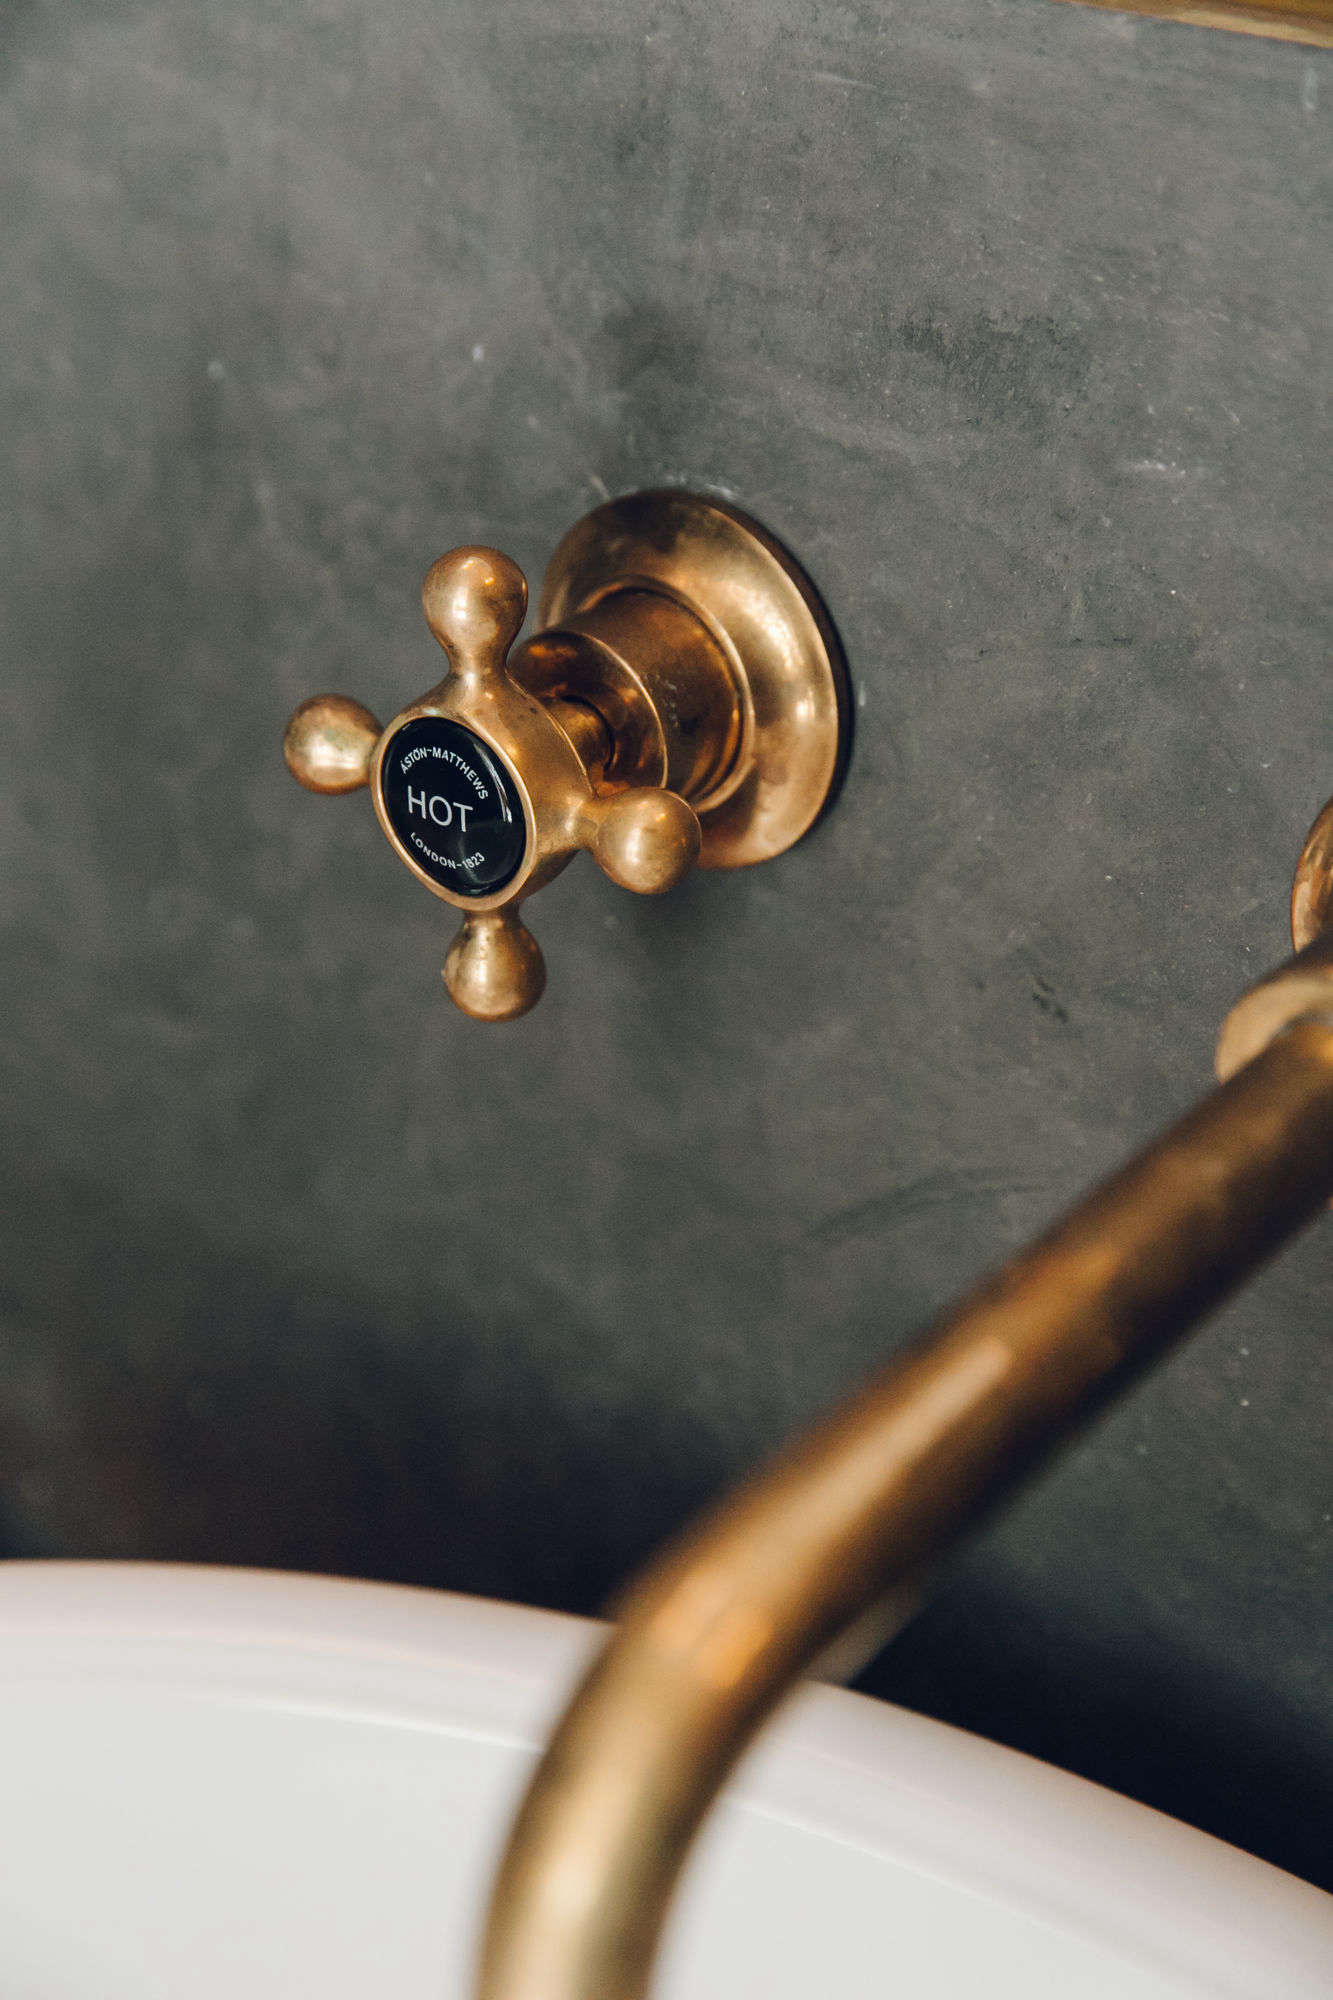 The brass faucet is fromBarber Wilsons & Co.